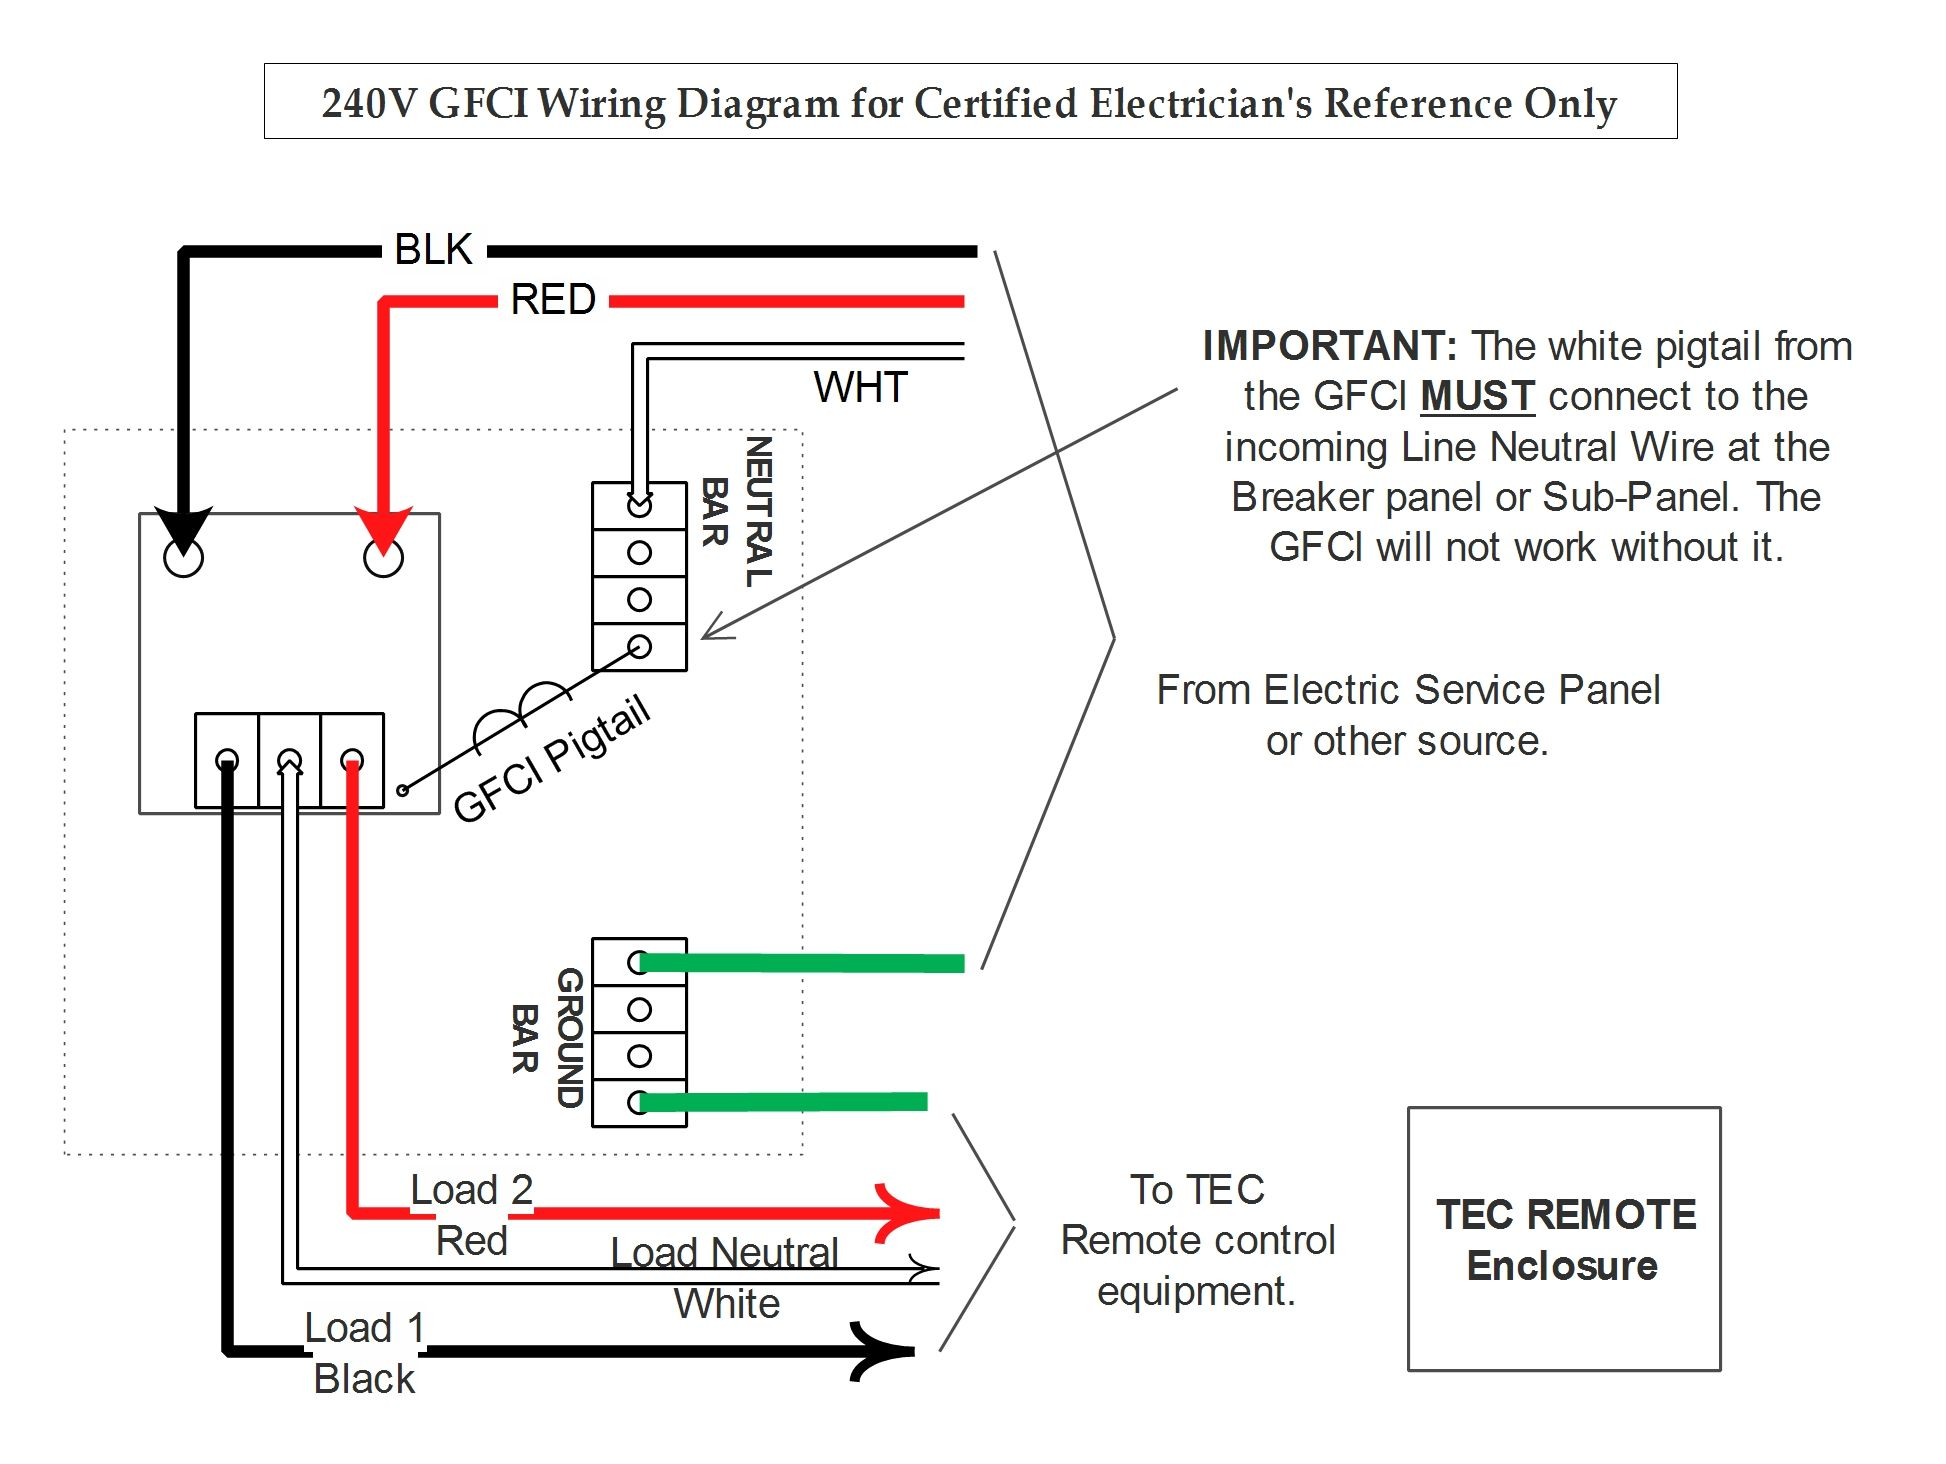 GFCI 240 Wiring wiring & installation c tec 800 series wiring diagram at nearapp.co